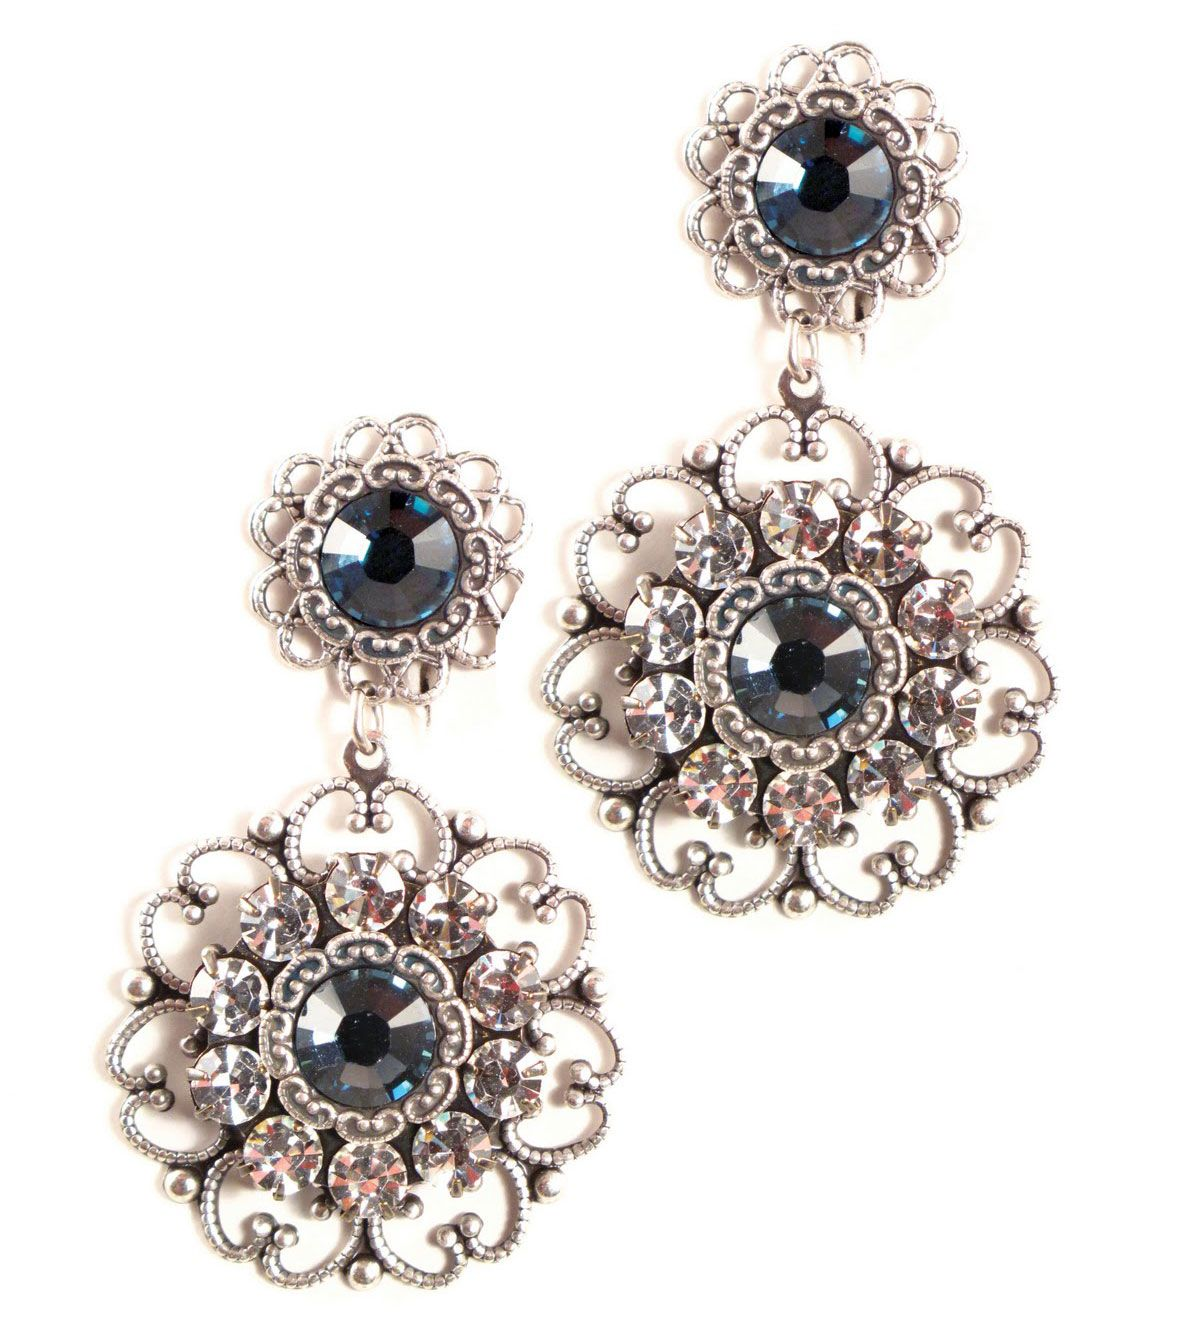 Antique Silver Filigree Montana Blue Crystal Earrings Touch To Zoom